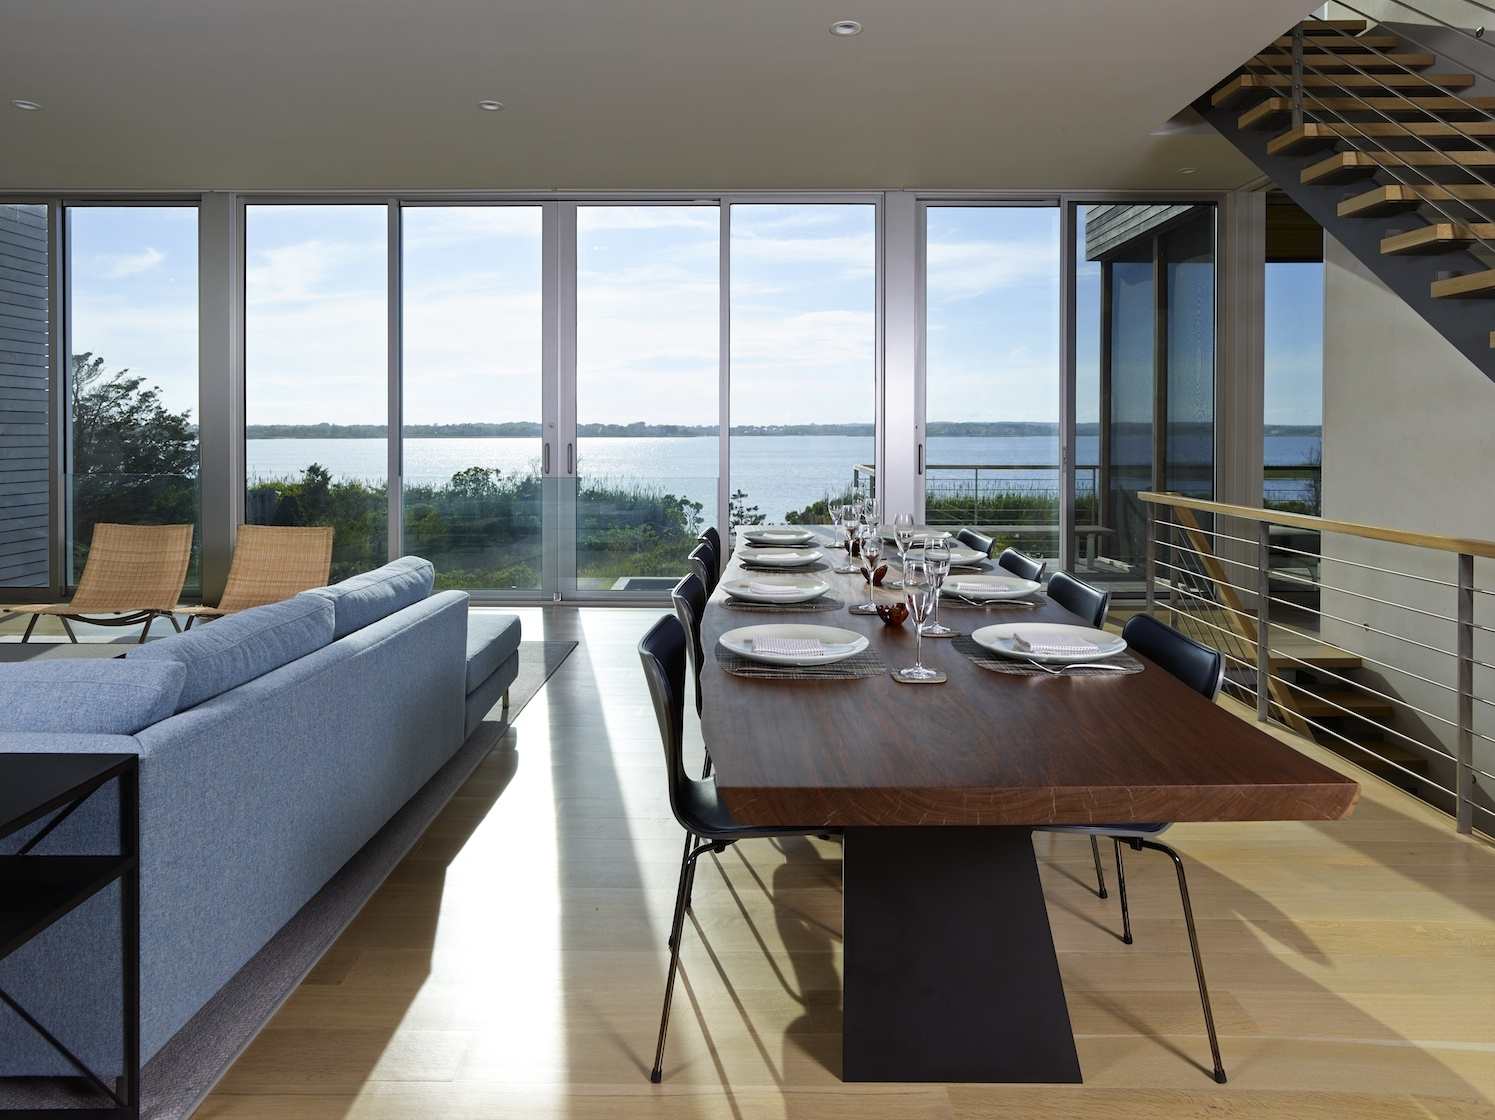 Water Mill, NY modern house interior design dining room